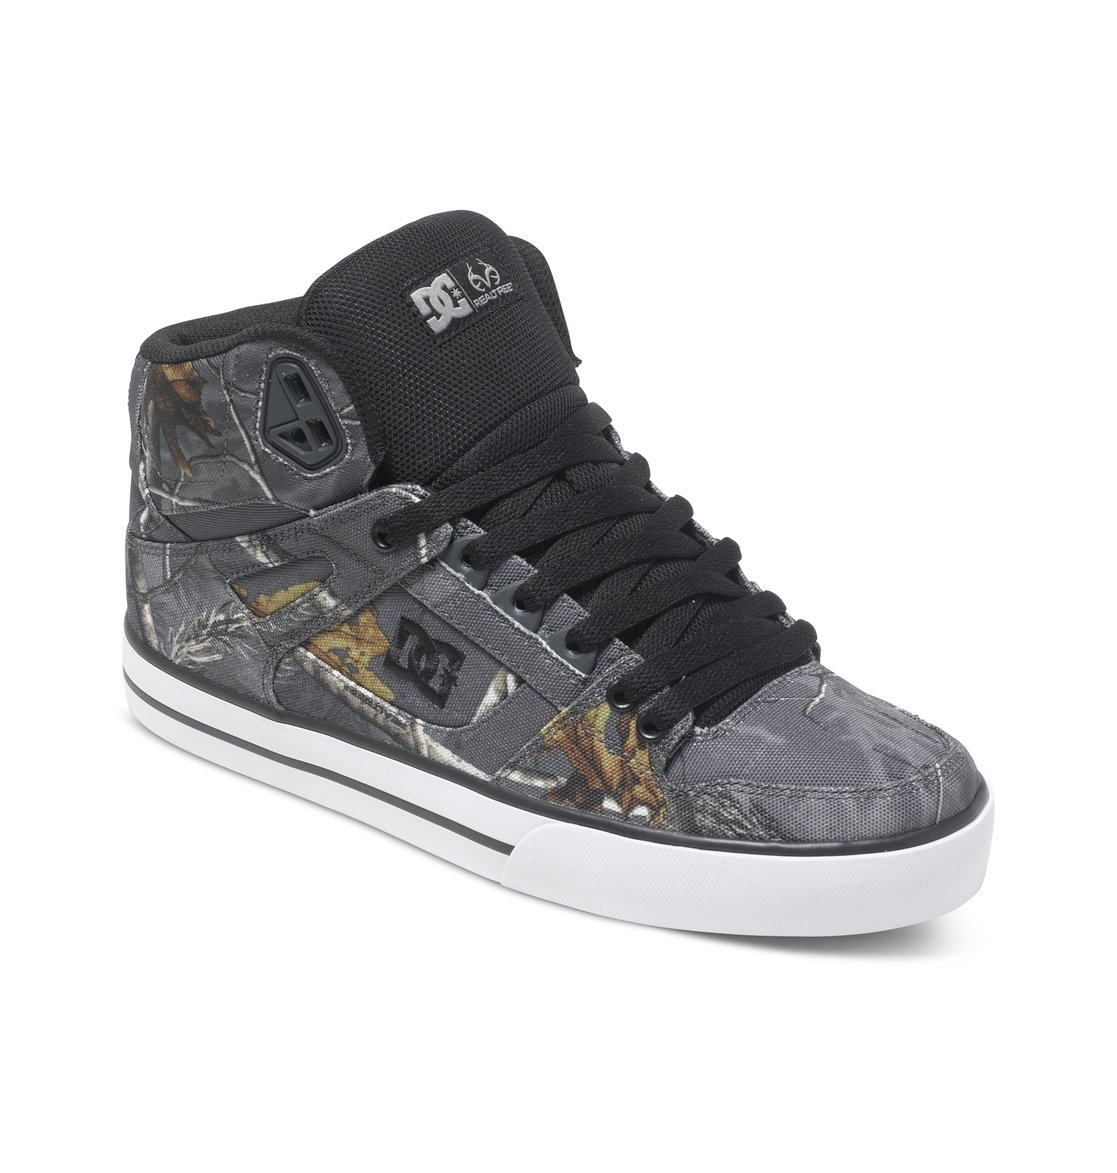 dc shoes Pure SE - Scarpe alte da Uomo - White - DC Shoes